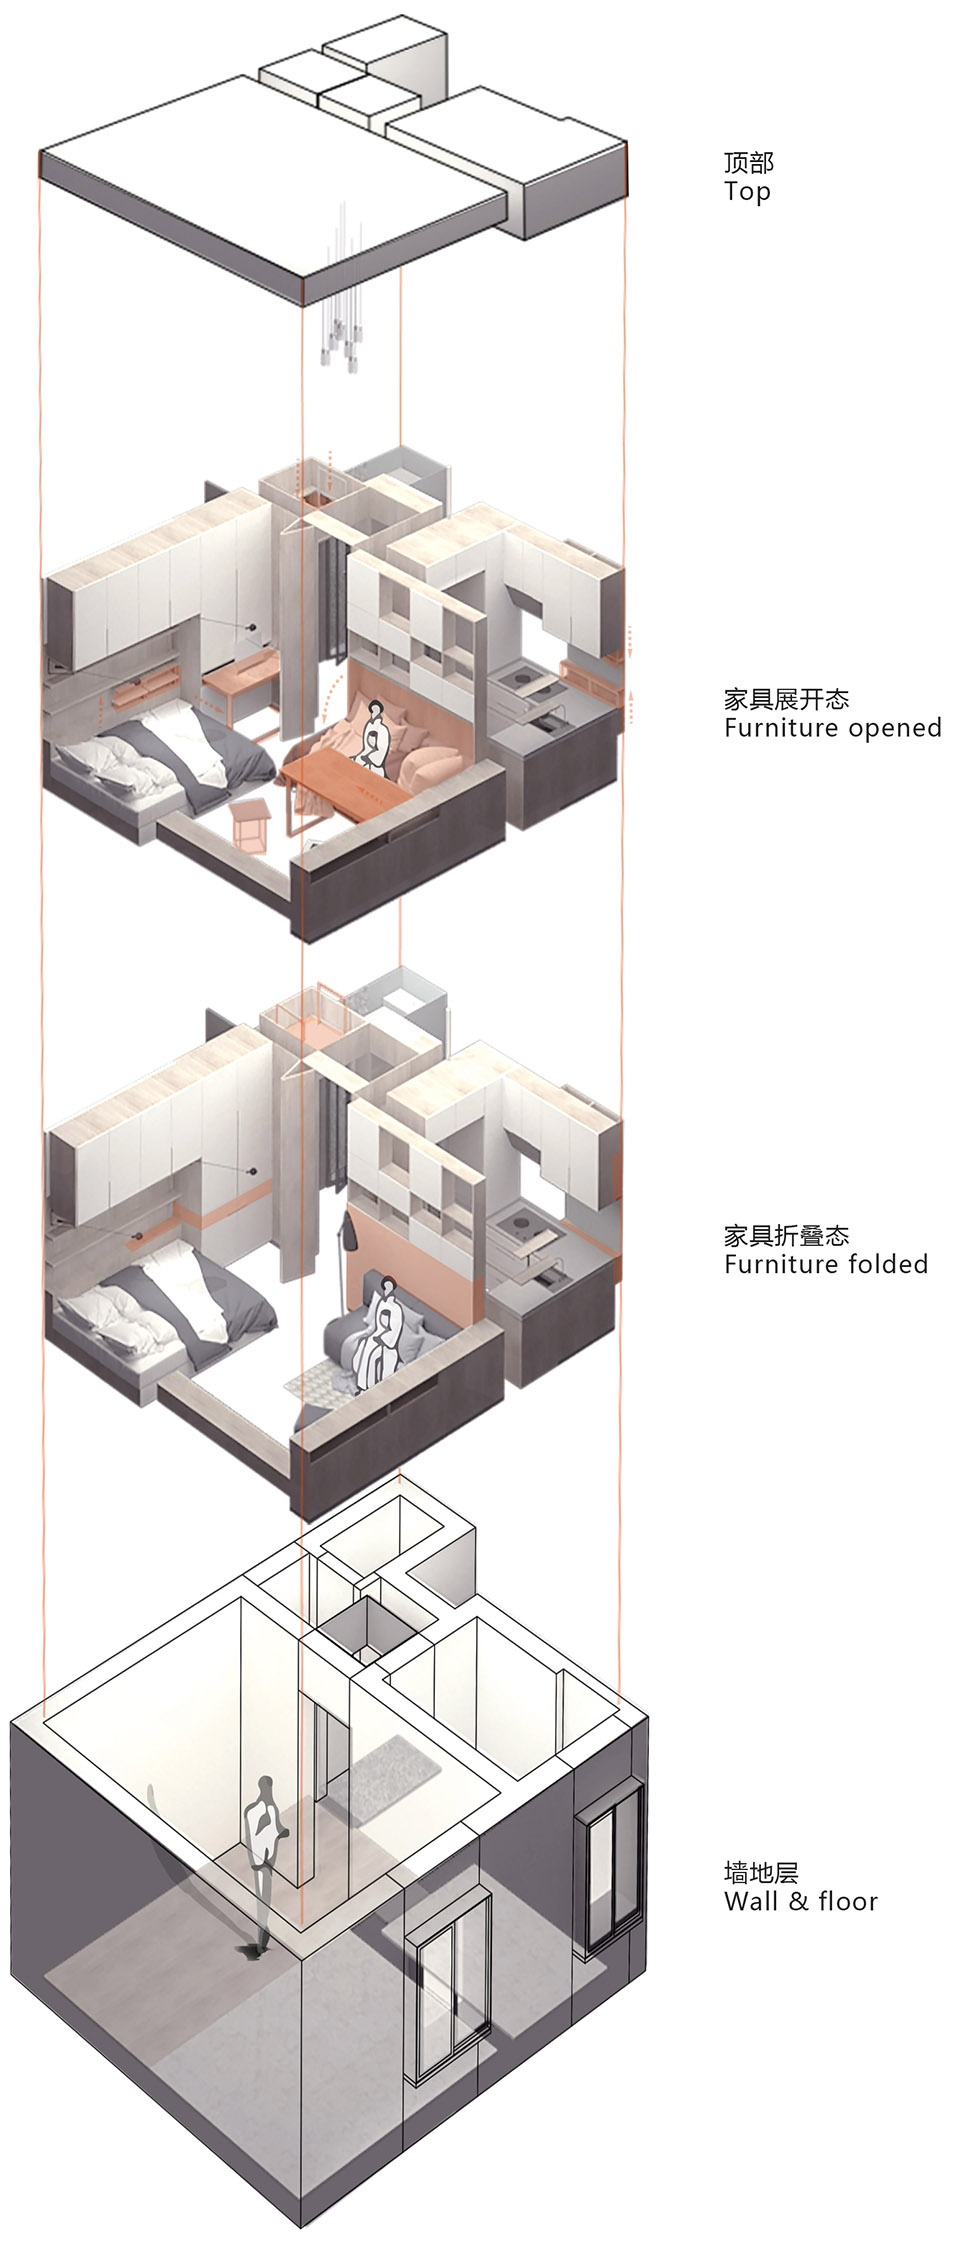 042-folding-space-20-square-meters-house-renovation-china-by-daga-architects-960x2247.jpg